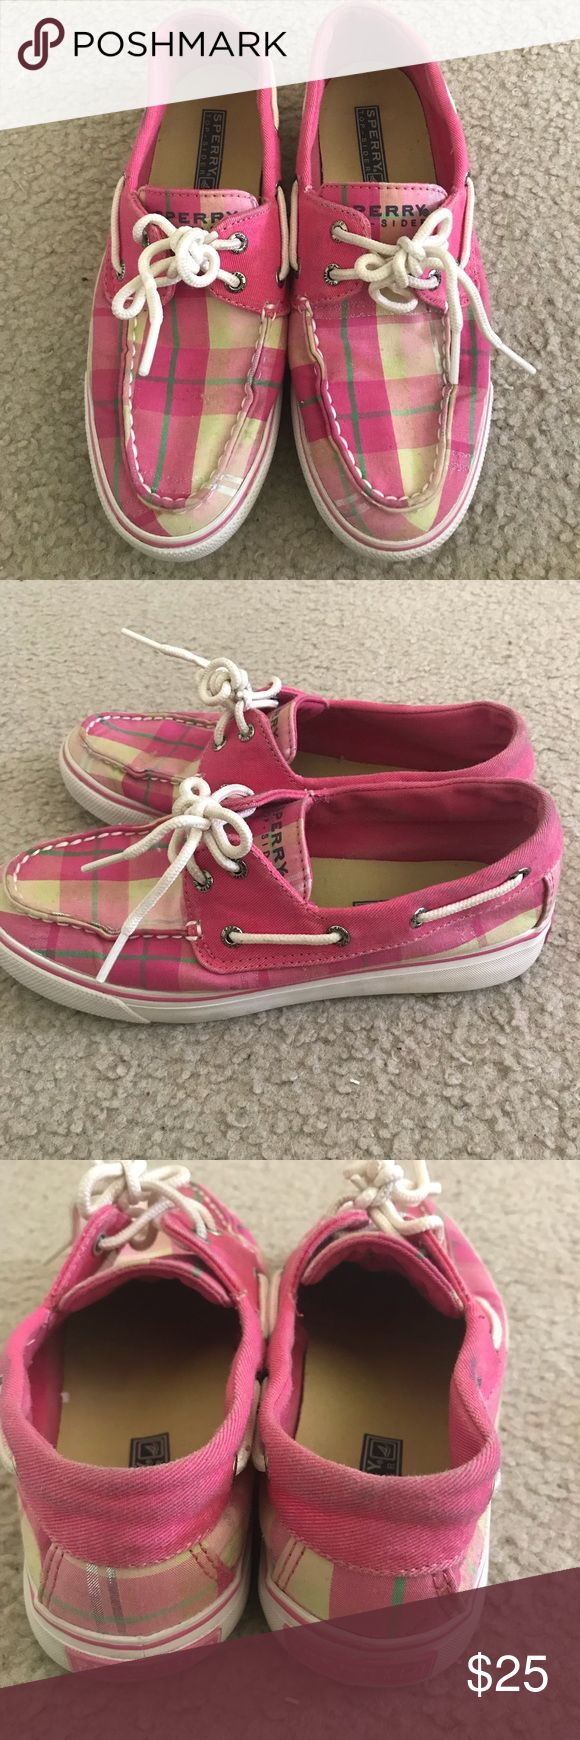 Sperry Topsiders Pink Sperry Topsider sneakers size 6. Worn multiple times and in good condition. Originally bought for $45 asking $25 OBO. Sperry Top-Sider Shoes Sneakers